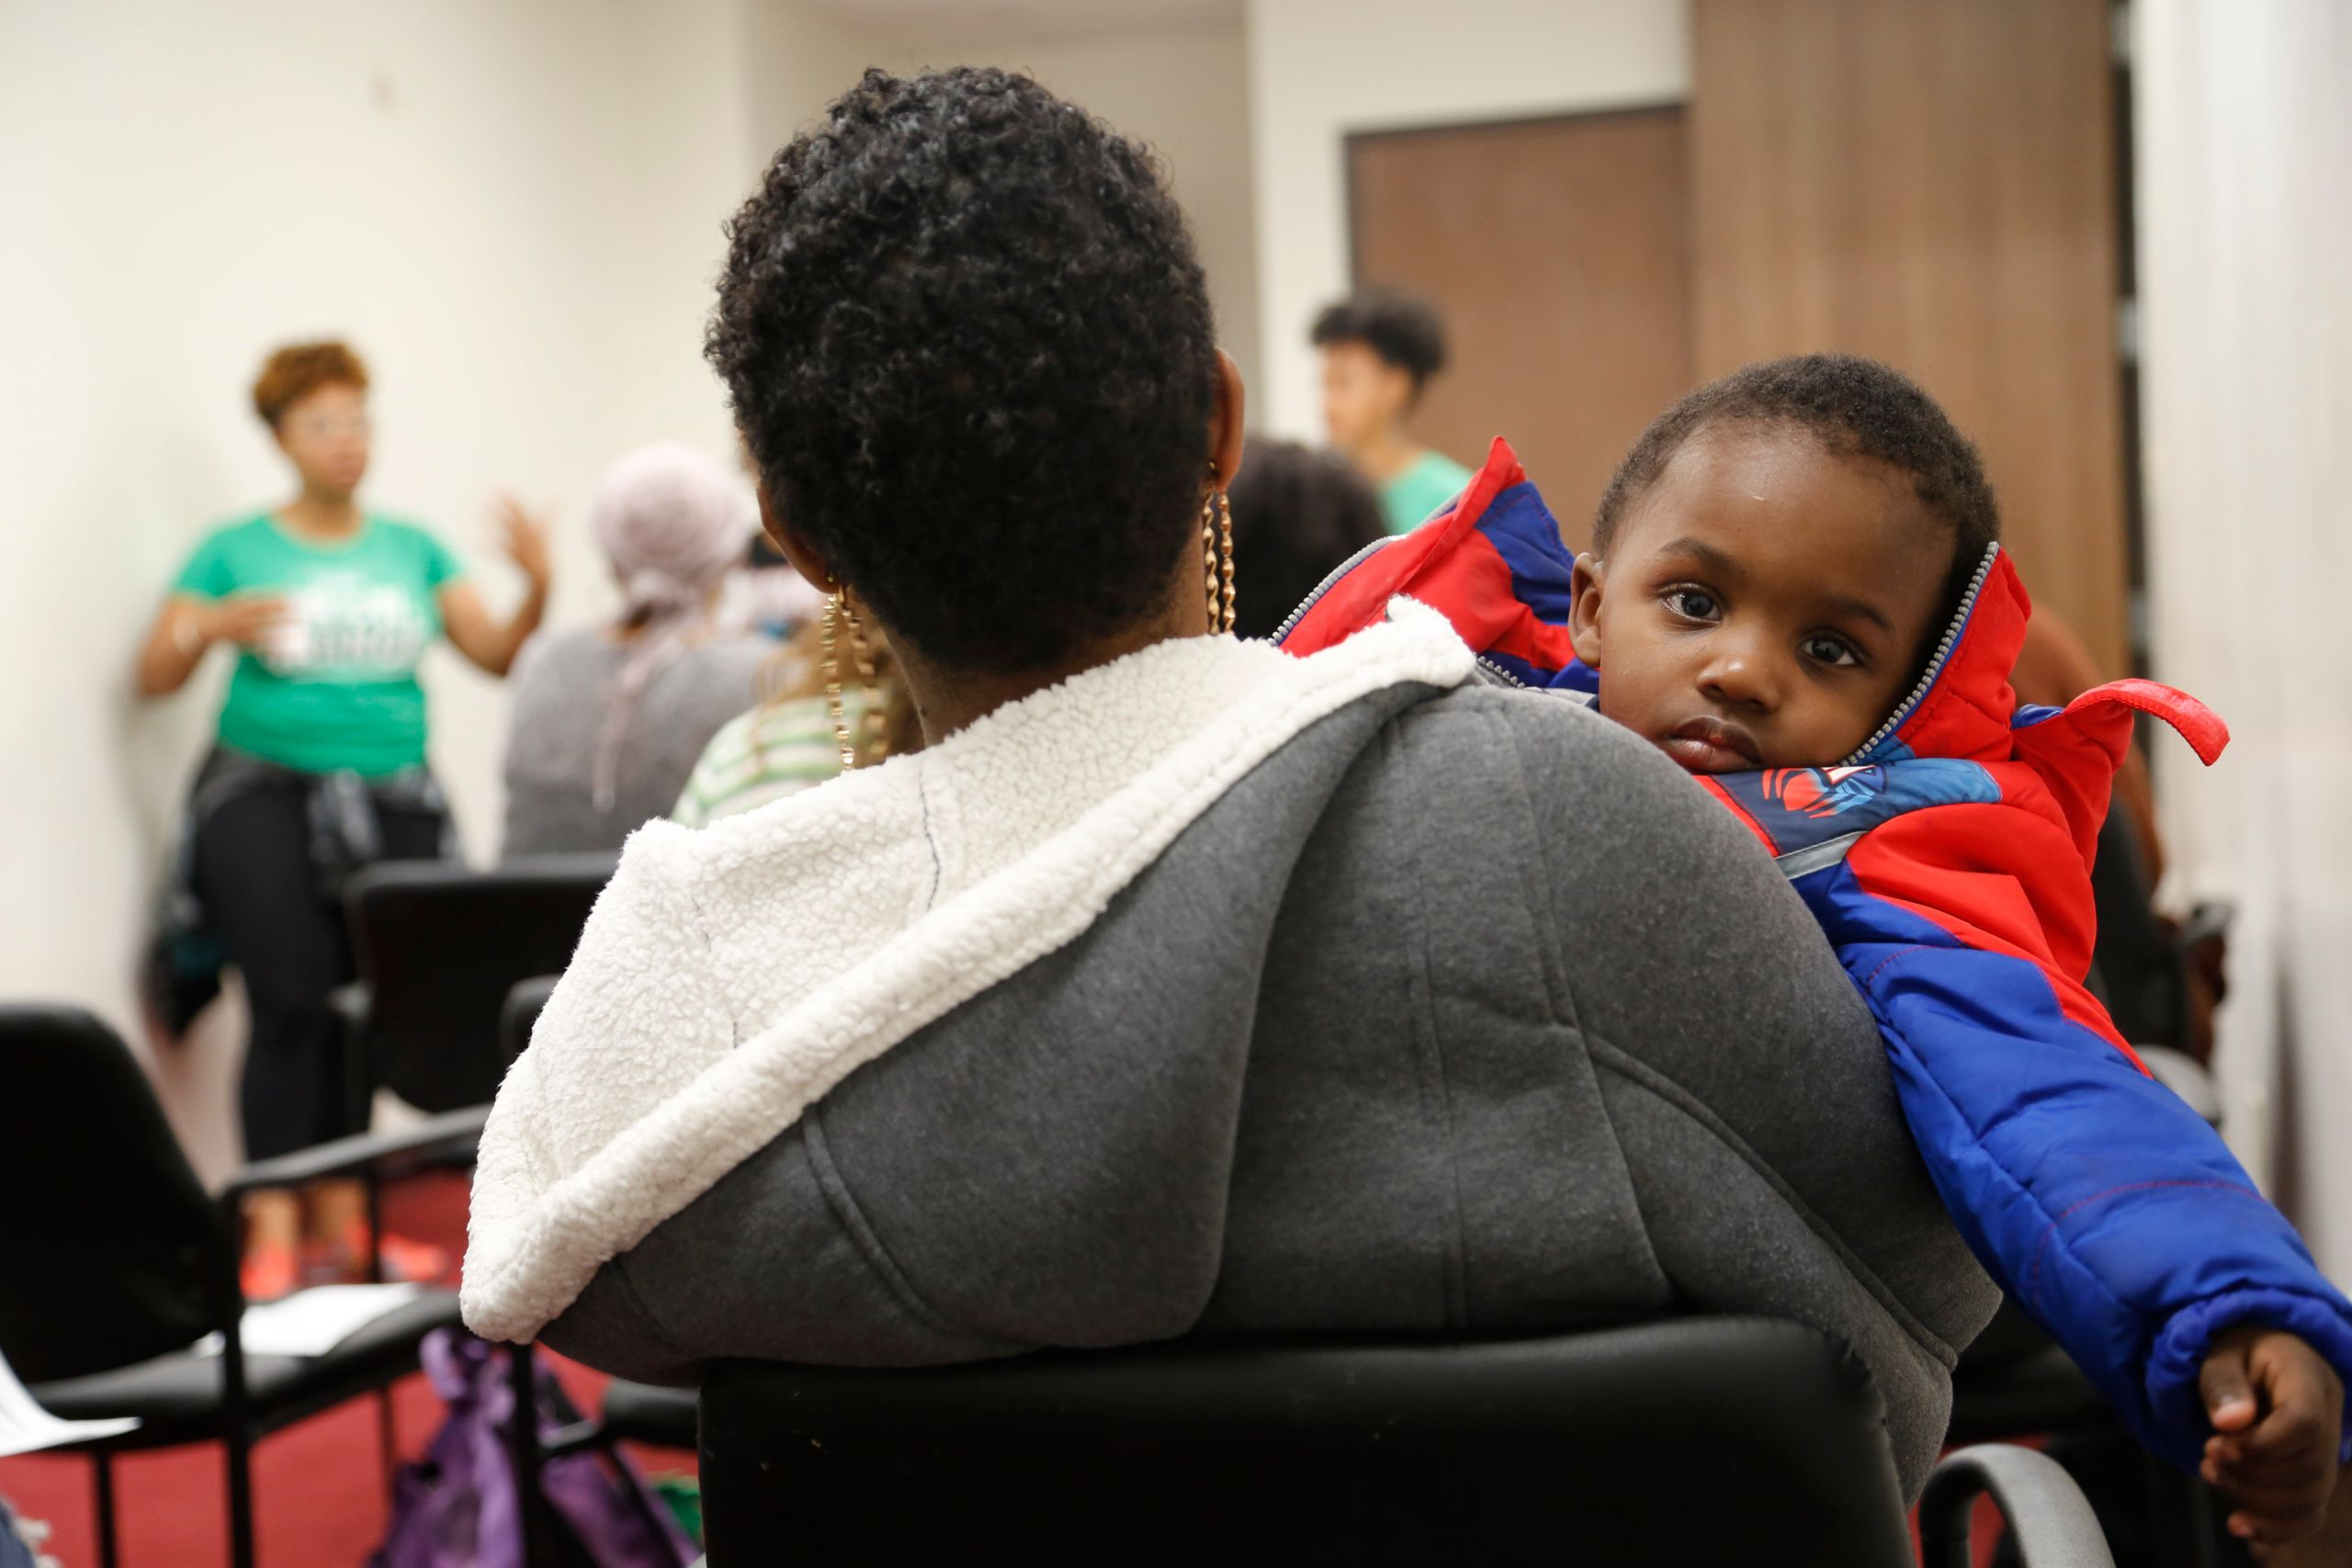 Markiana Richards attends an infant health classatGreat Beginnings for Black Babies with her son, Priceton,